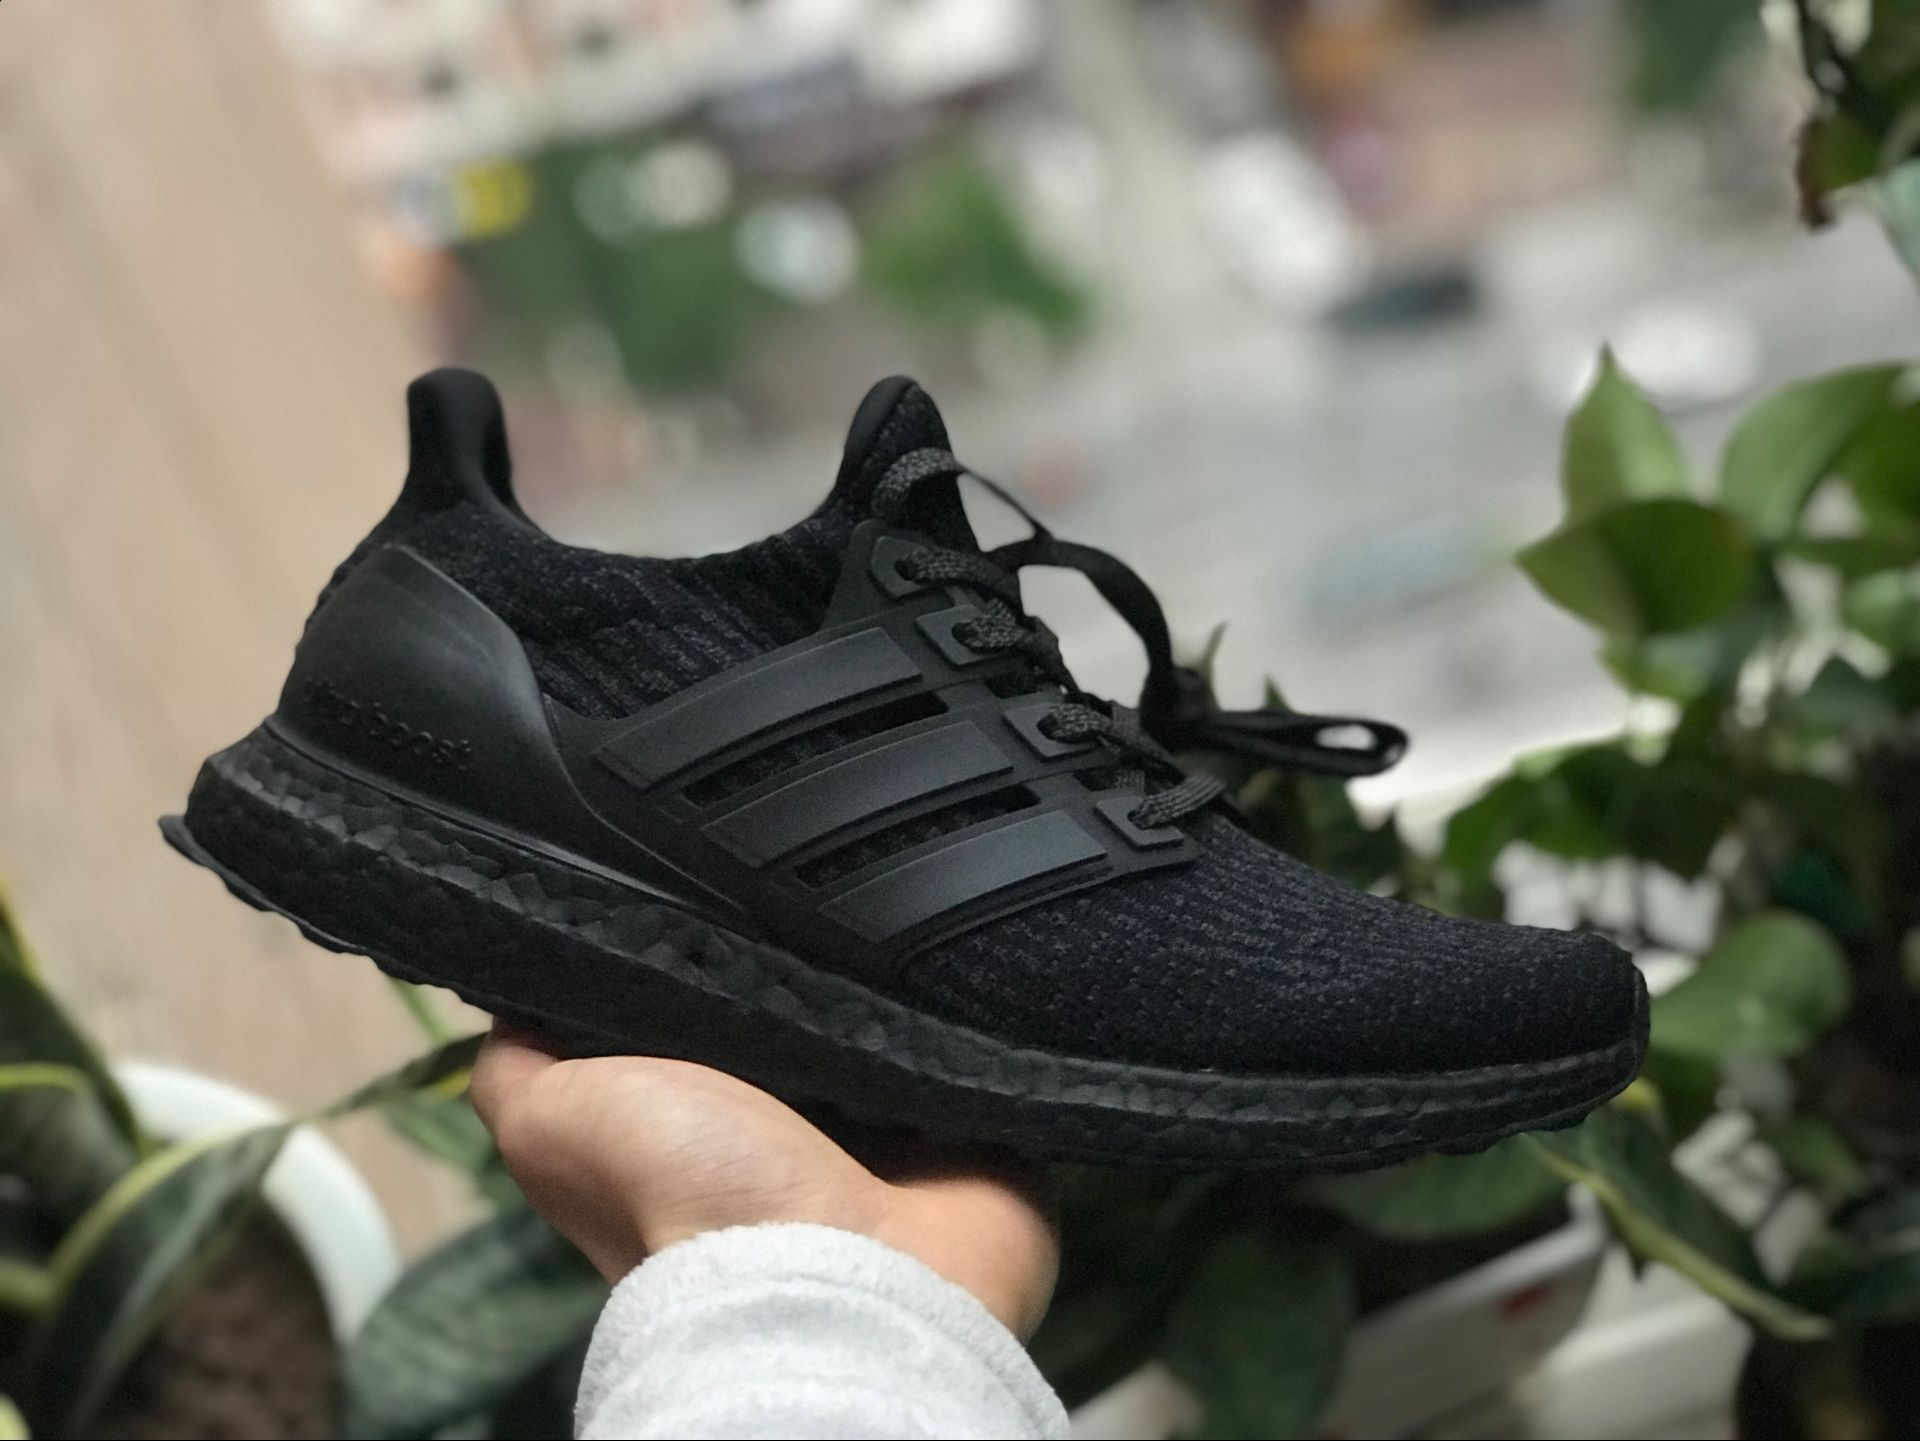 Wholesale HOT 2018 aaaaa quality ARKYN shoes        Ultra Boost ub4.0 shoes 12